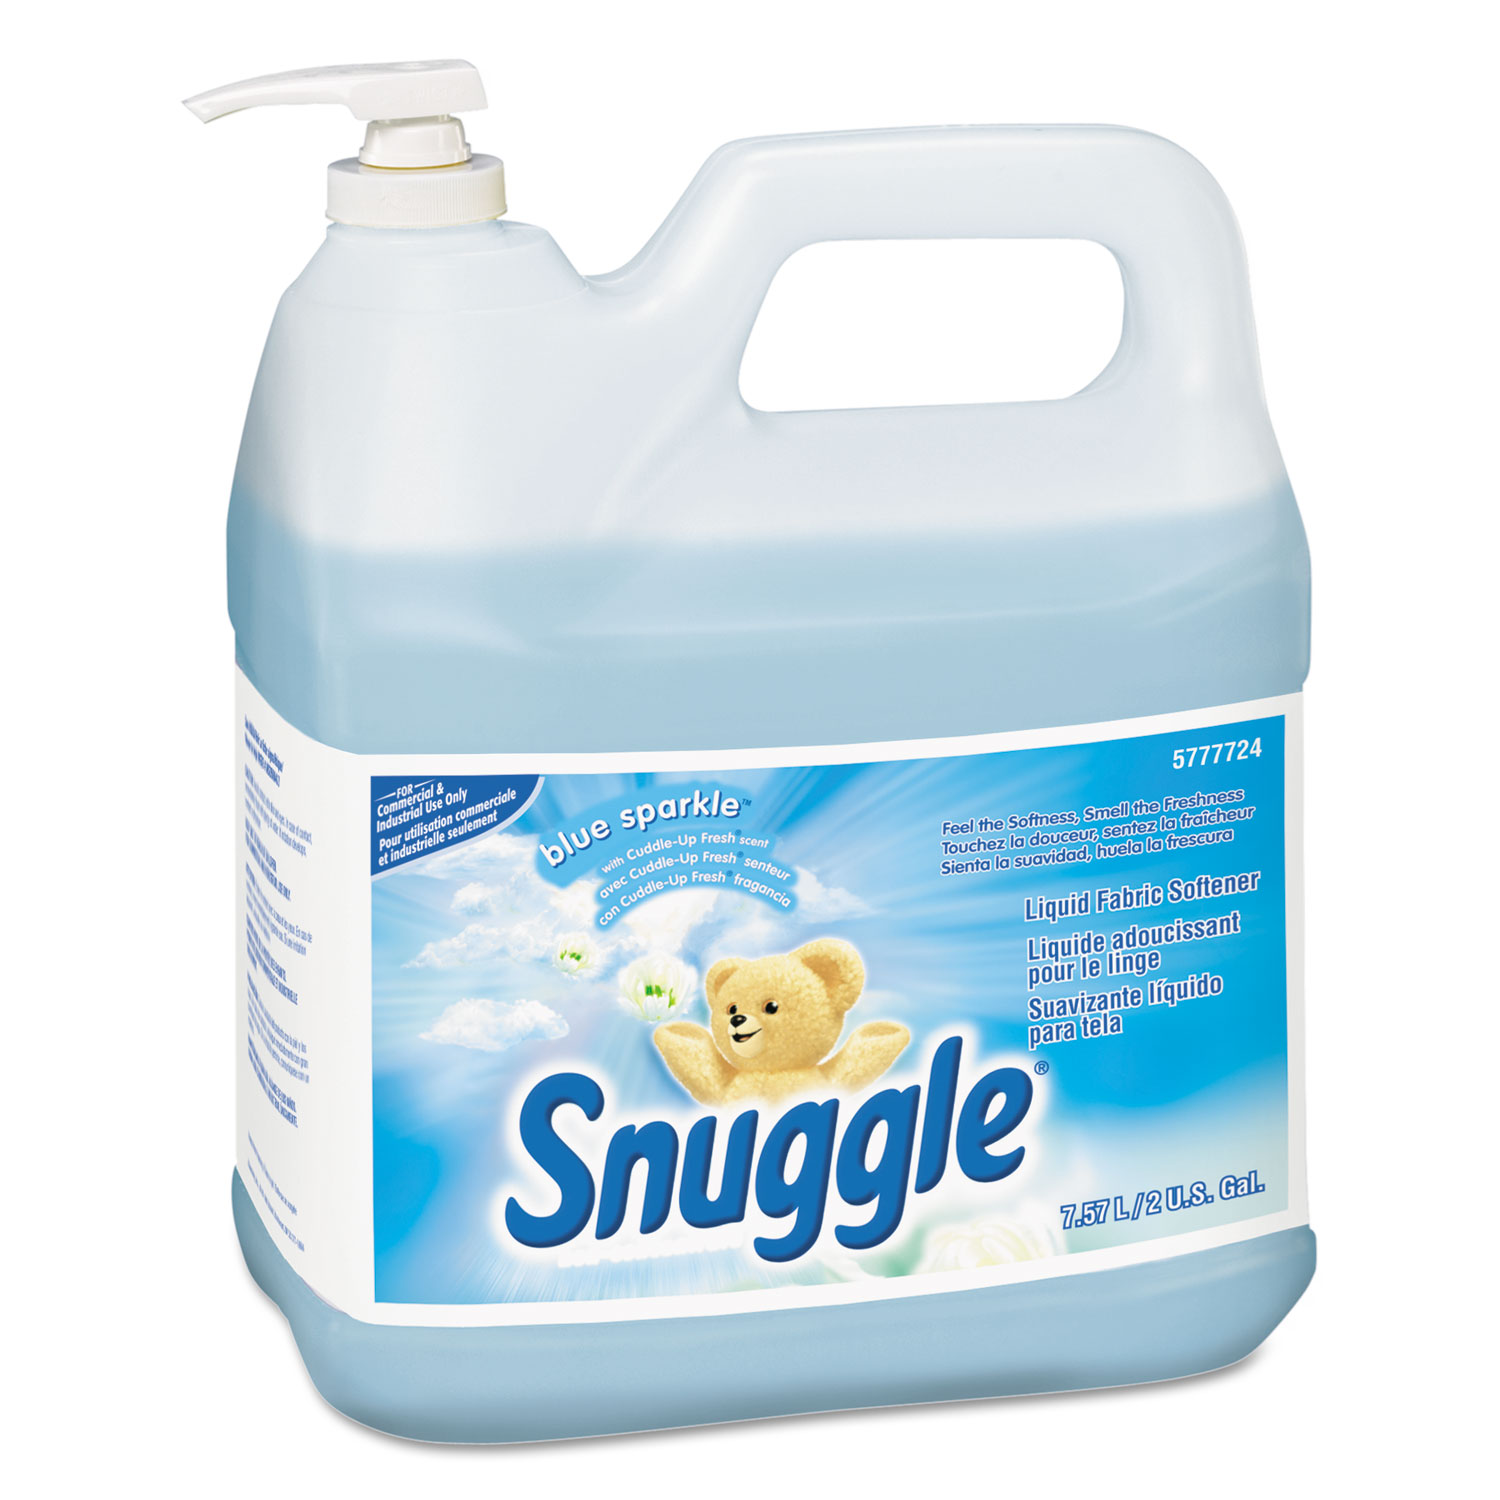 Liquid Fabric Softener By Snuggle® Dvo5777724. Insurance Quote On Line Web Sites For Lawyers. Speeding Tickets Florida Clear Acrylic Awards. Pittsburgh Consulting Firms Rugged Pc Laptop. Carbon Dioxide Absorbents Windows Sever 2003. Quickbooks Cloud Server Exam View Test Player. Chevy Volt Cost Per Mile Sub Prime Auto Leads. Home Loan Intrest Rates How Build Your Credit. Twin Studies Psychology Owe Back Taxes To Irs